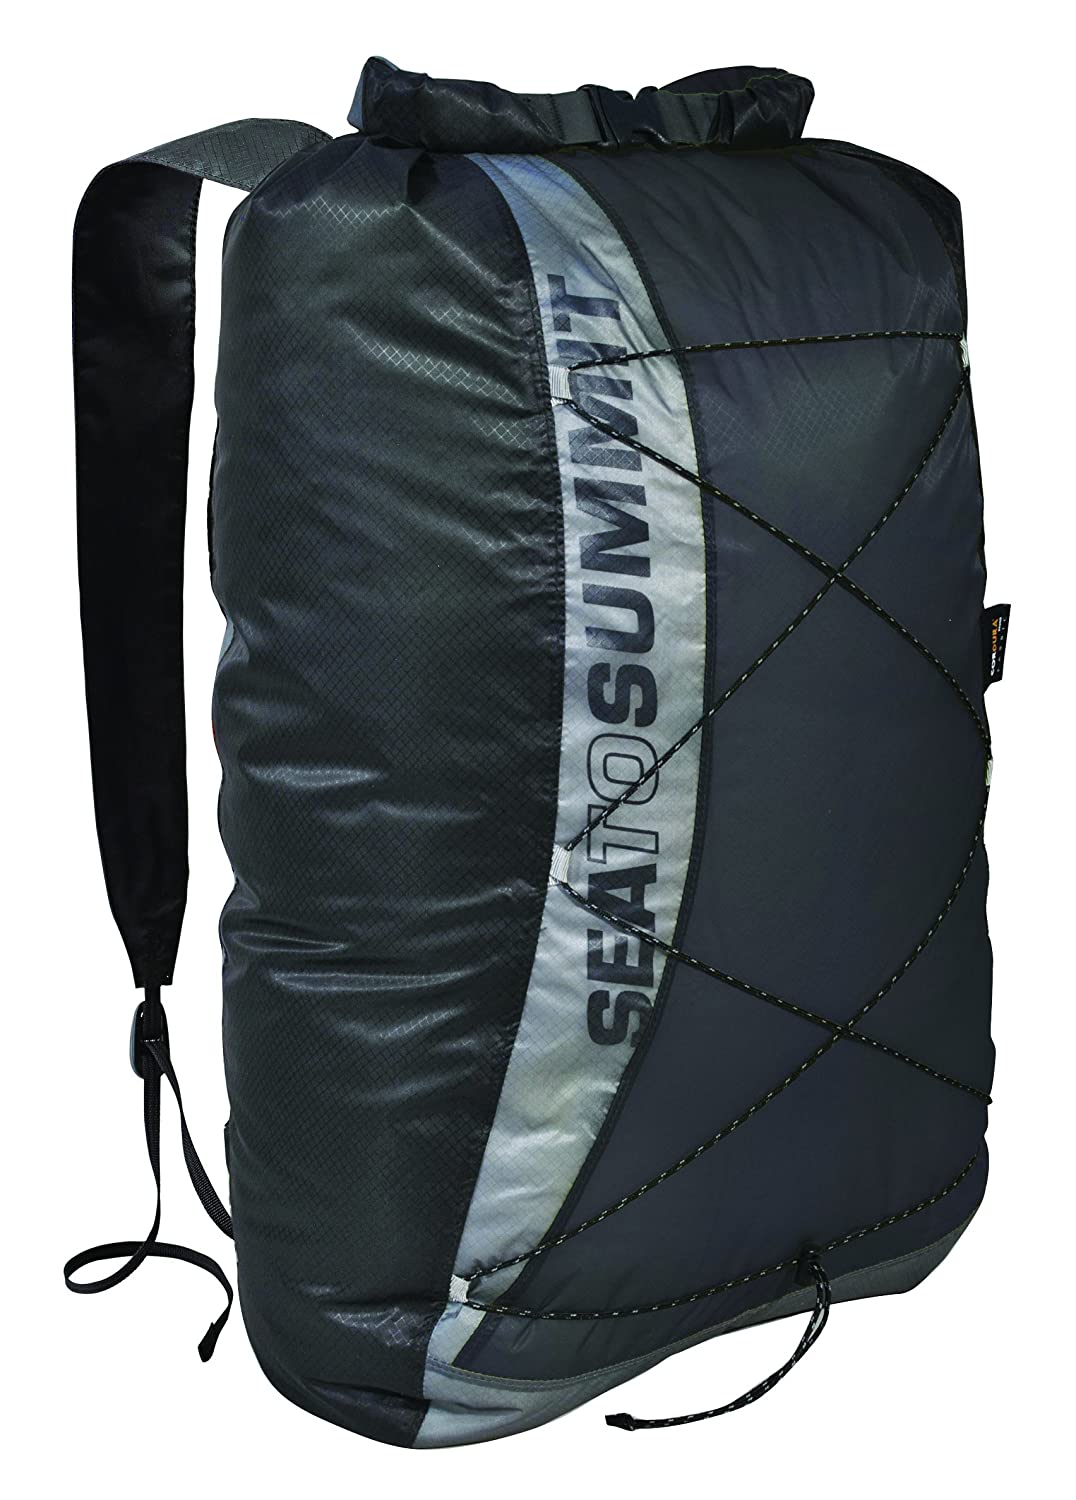 Sea to Summit Ultra-Sil Dry Day Pack 22-Liter